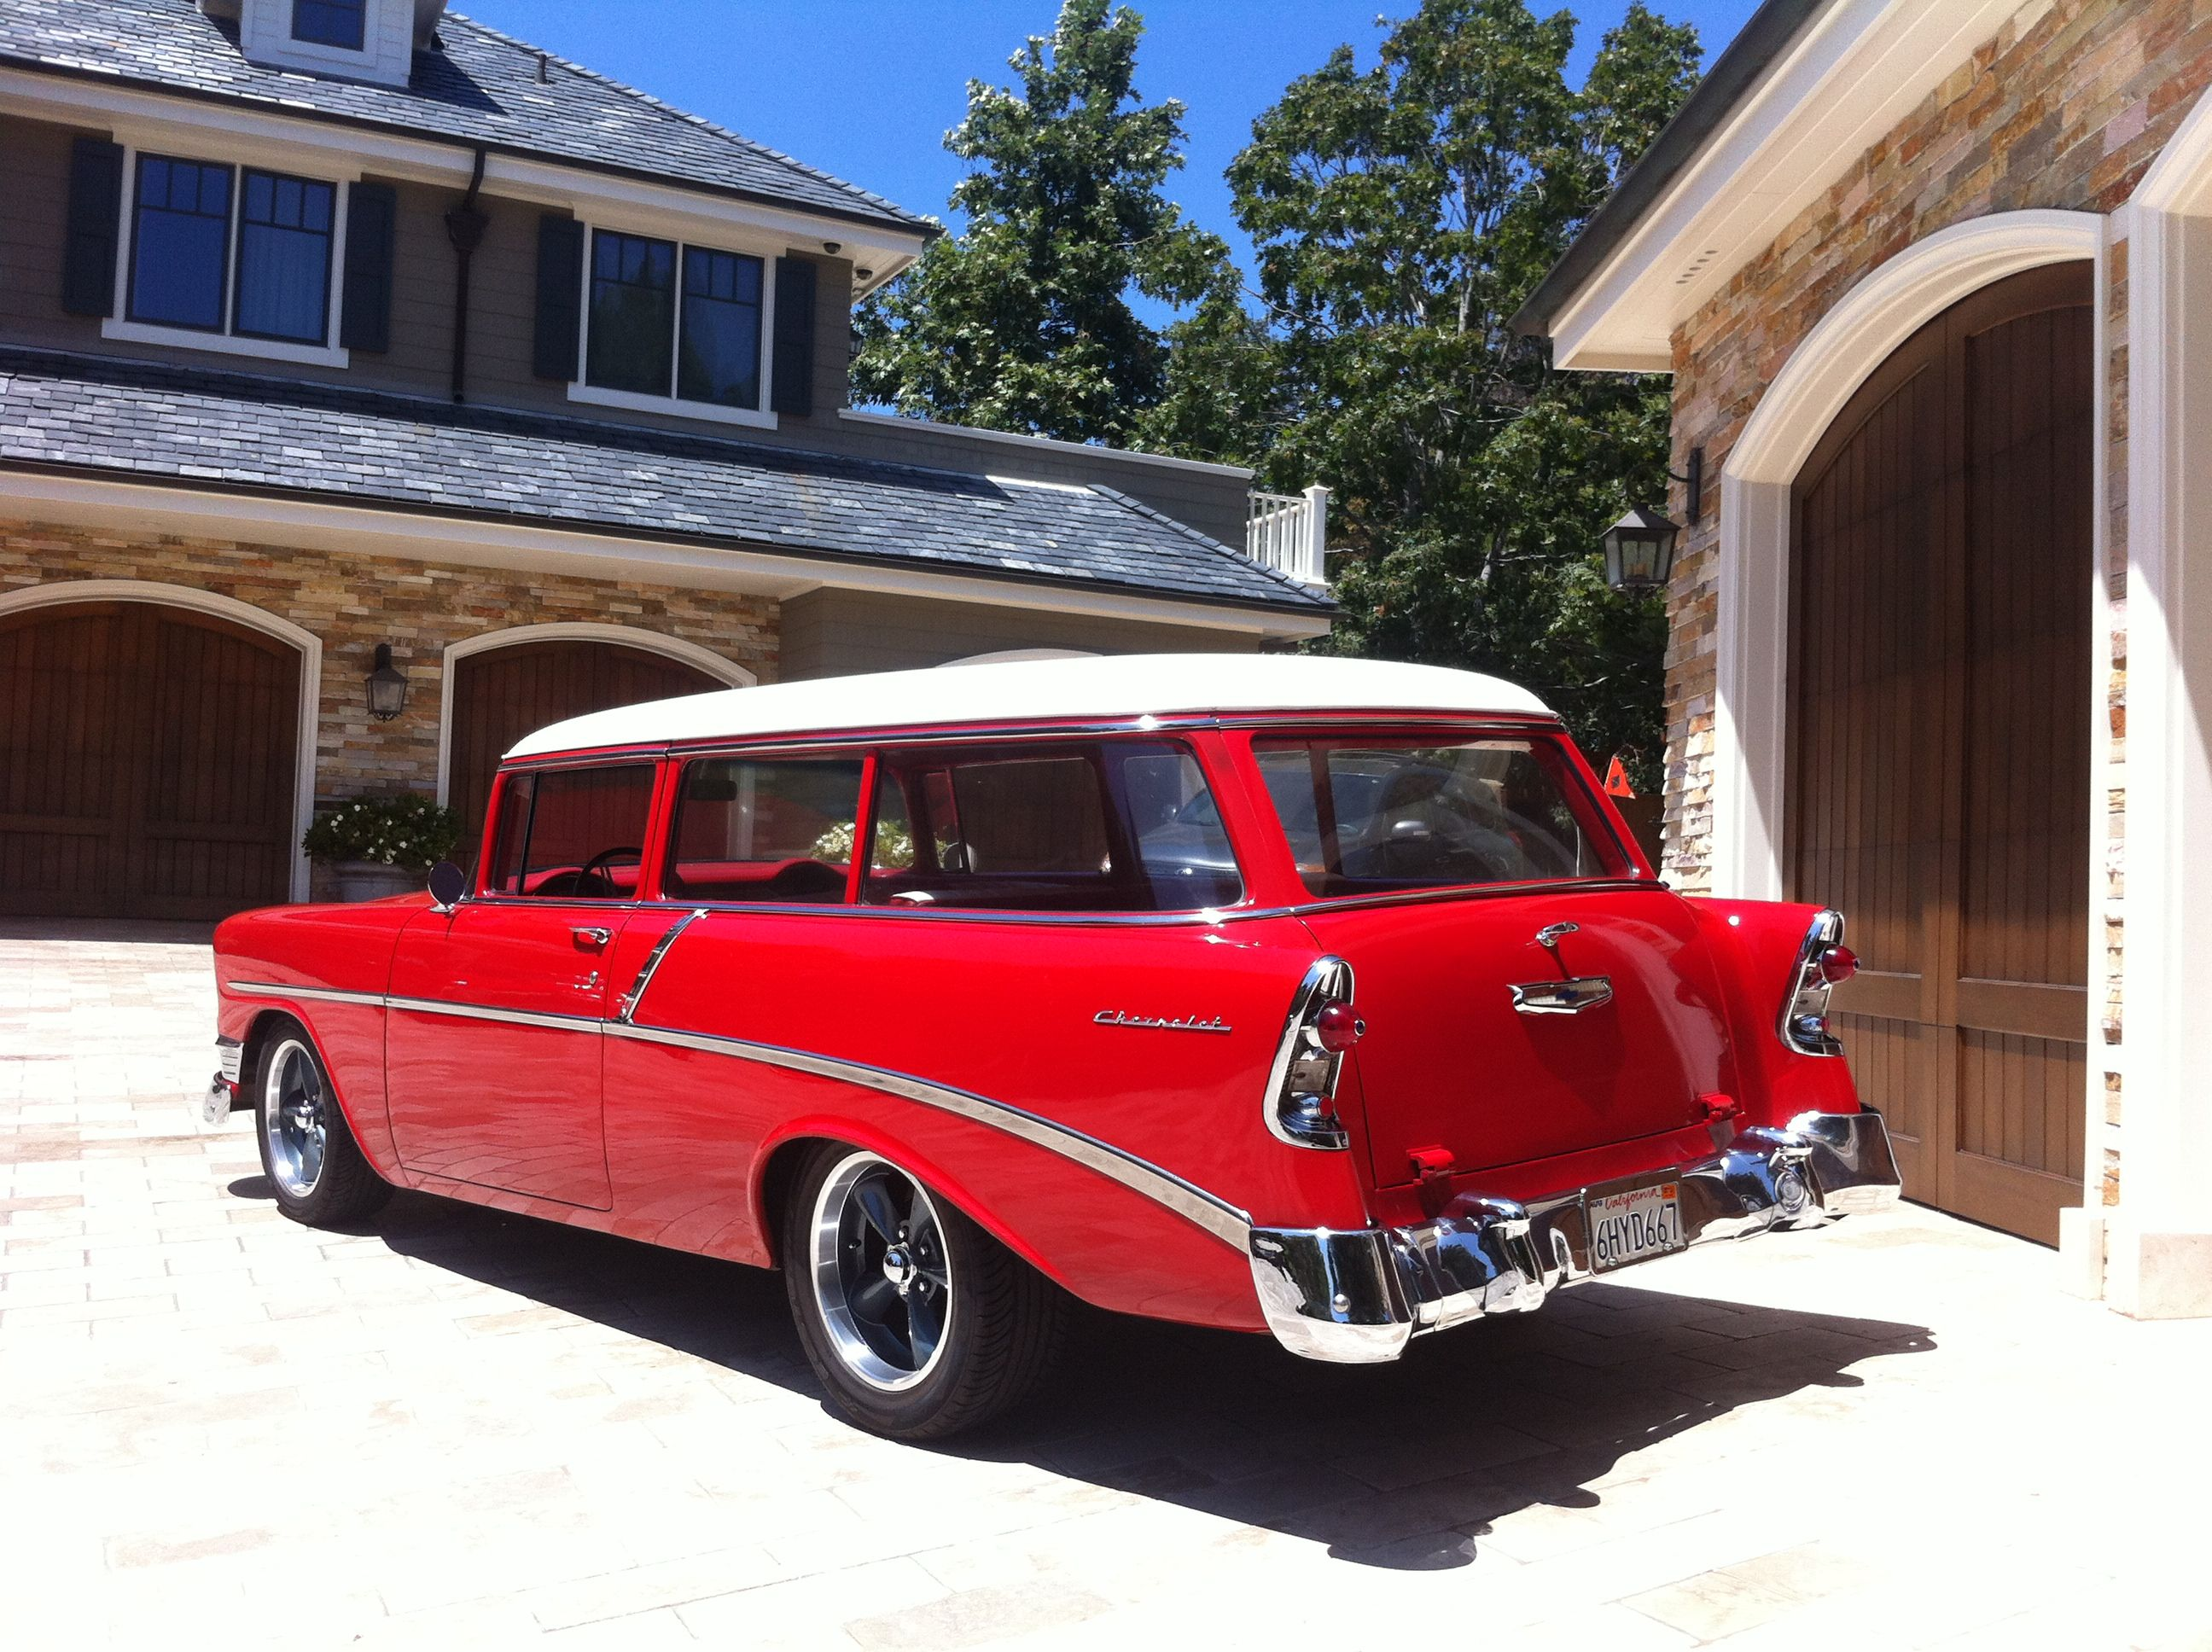 1955 chevrolet handyman 2 door wagon street rod - 1956 Chevy 210 Wagon Handyman Red For Sale In United States 30 000